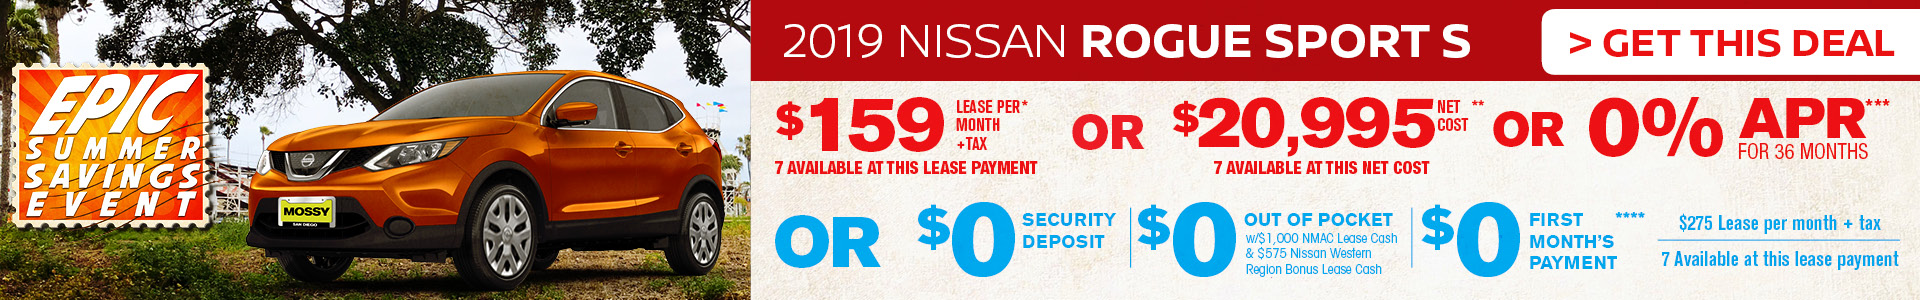 Mossy Nissan - Nissan Rogue Sport $159 Lease